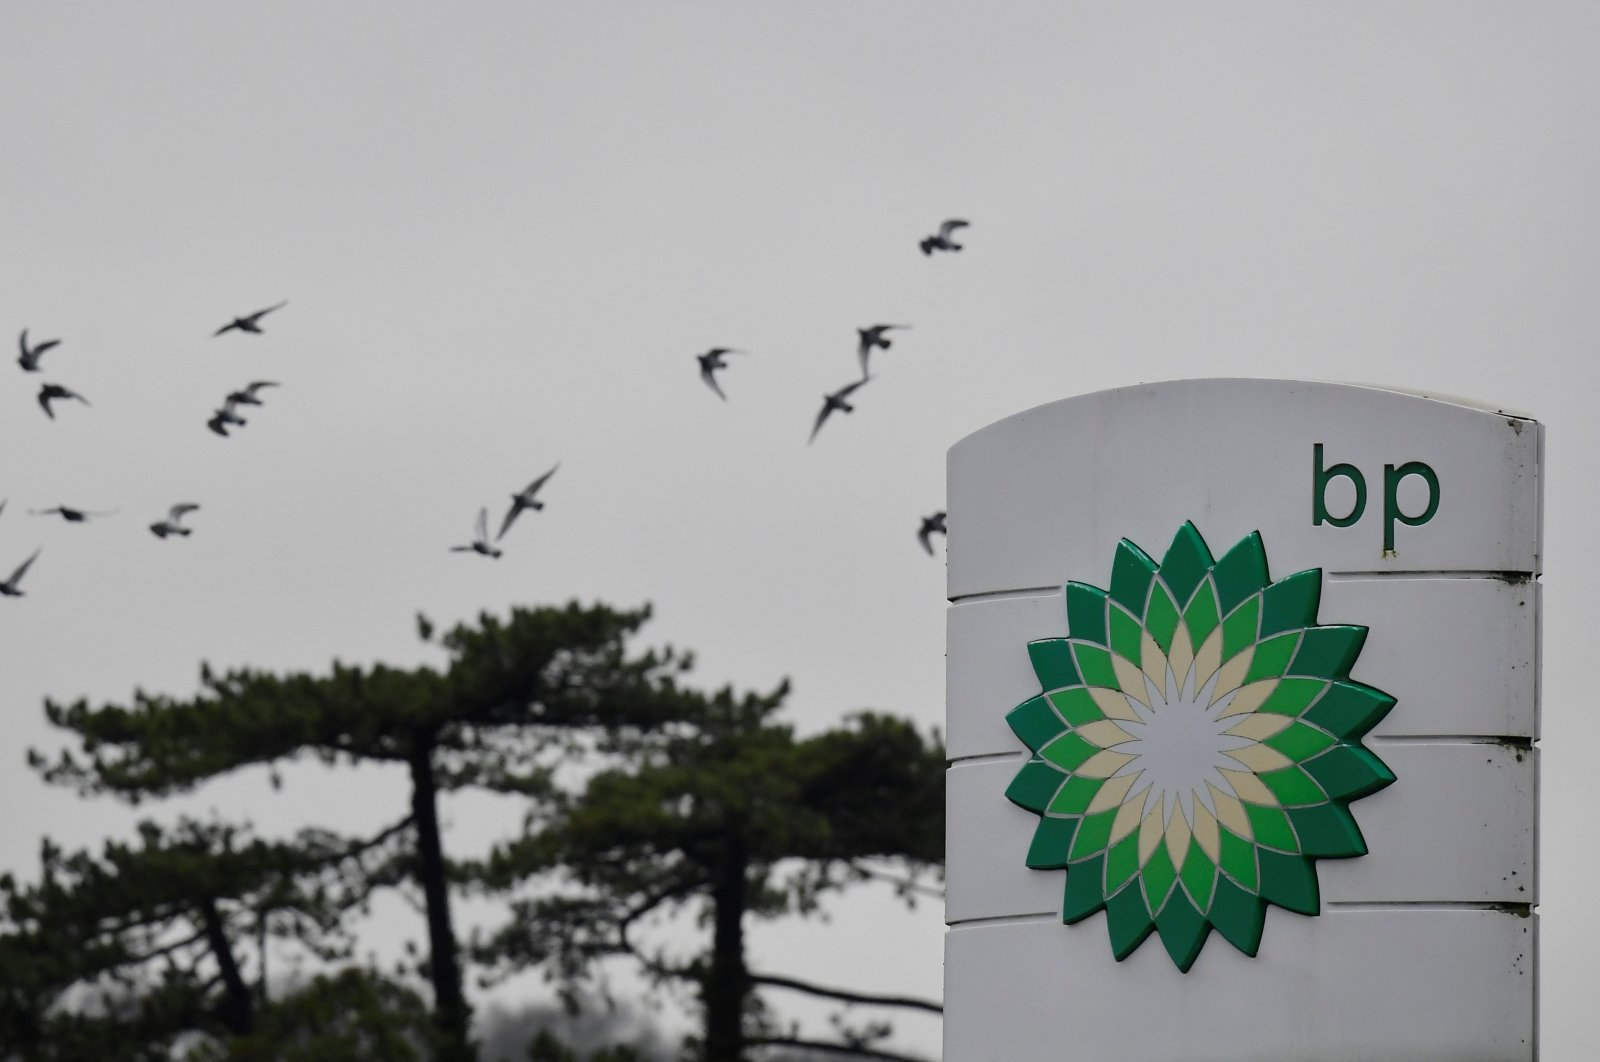 Signage is seen for BP at a service station near Brighton, Britain, on Jan. 30, 2021. (Reuters Photo)